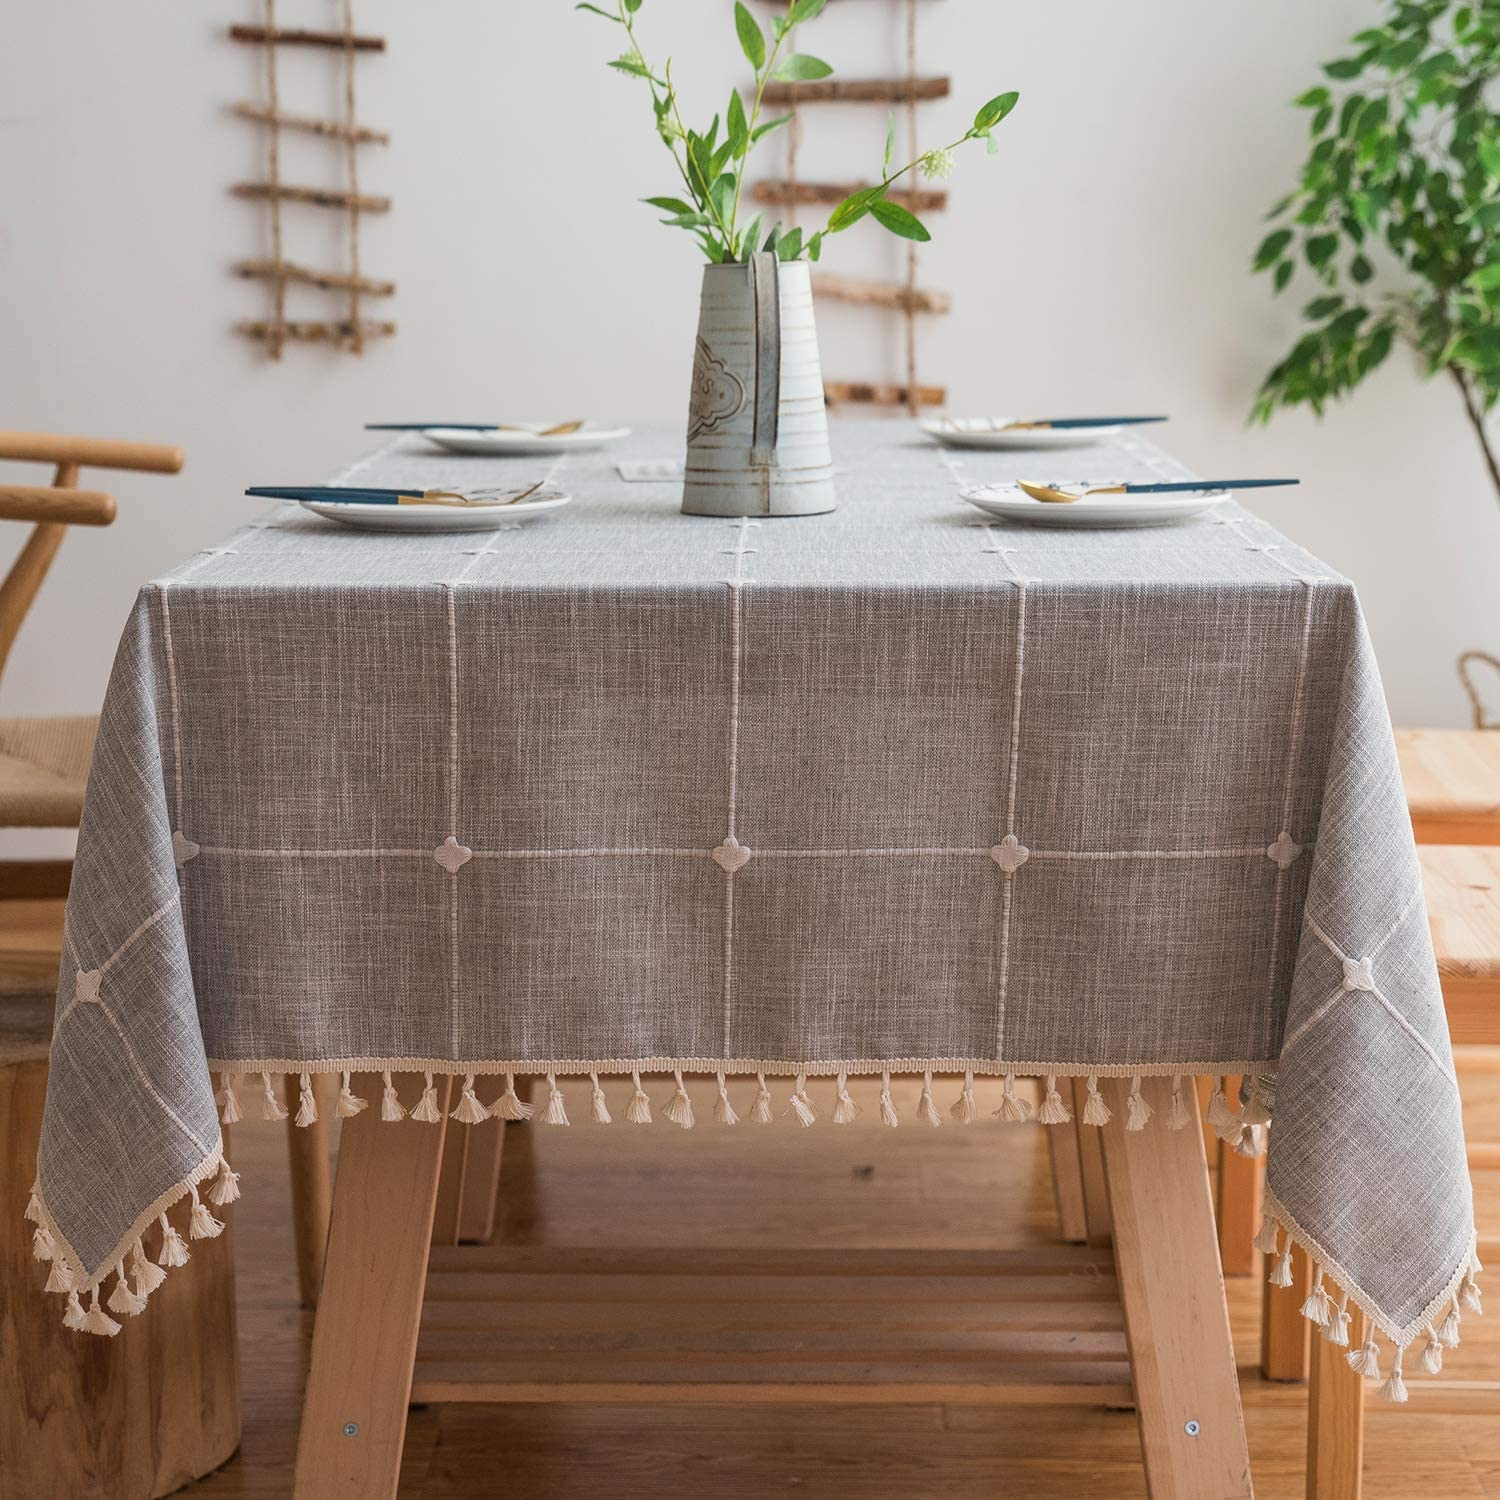 Hand-made tablecloth with matyo pattern Authentic black material,heartfringe3947